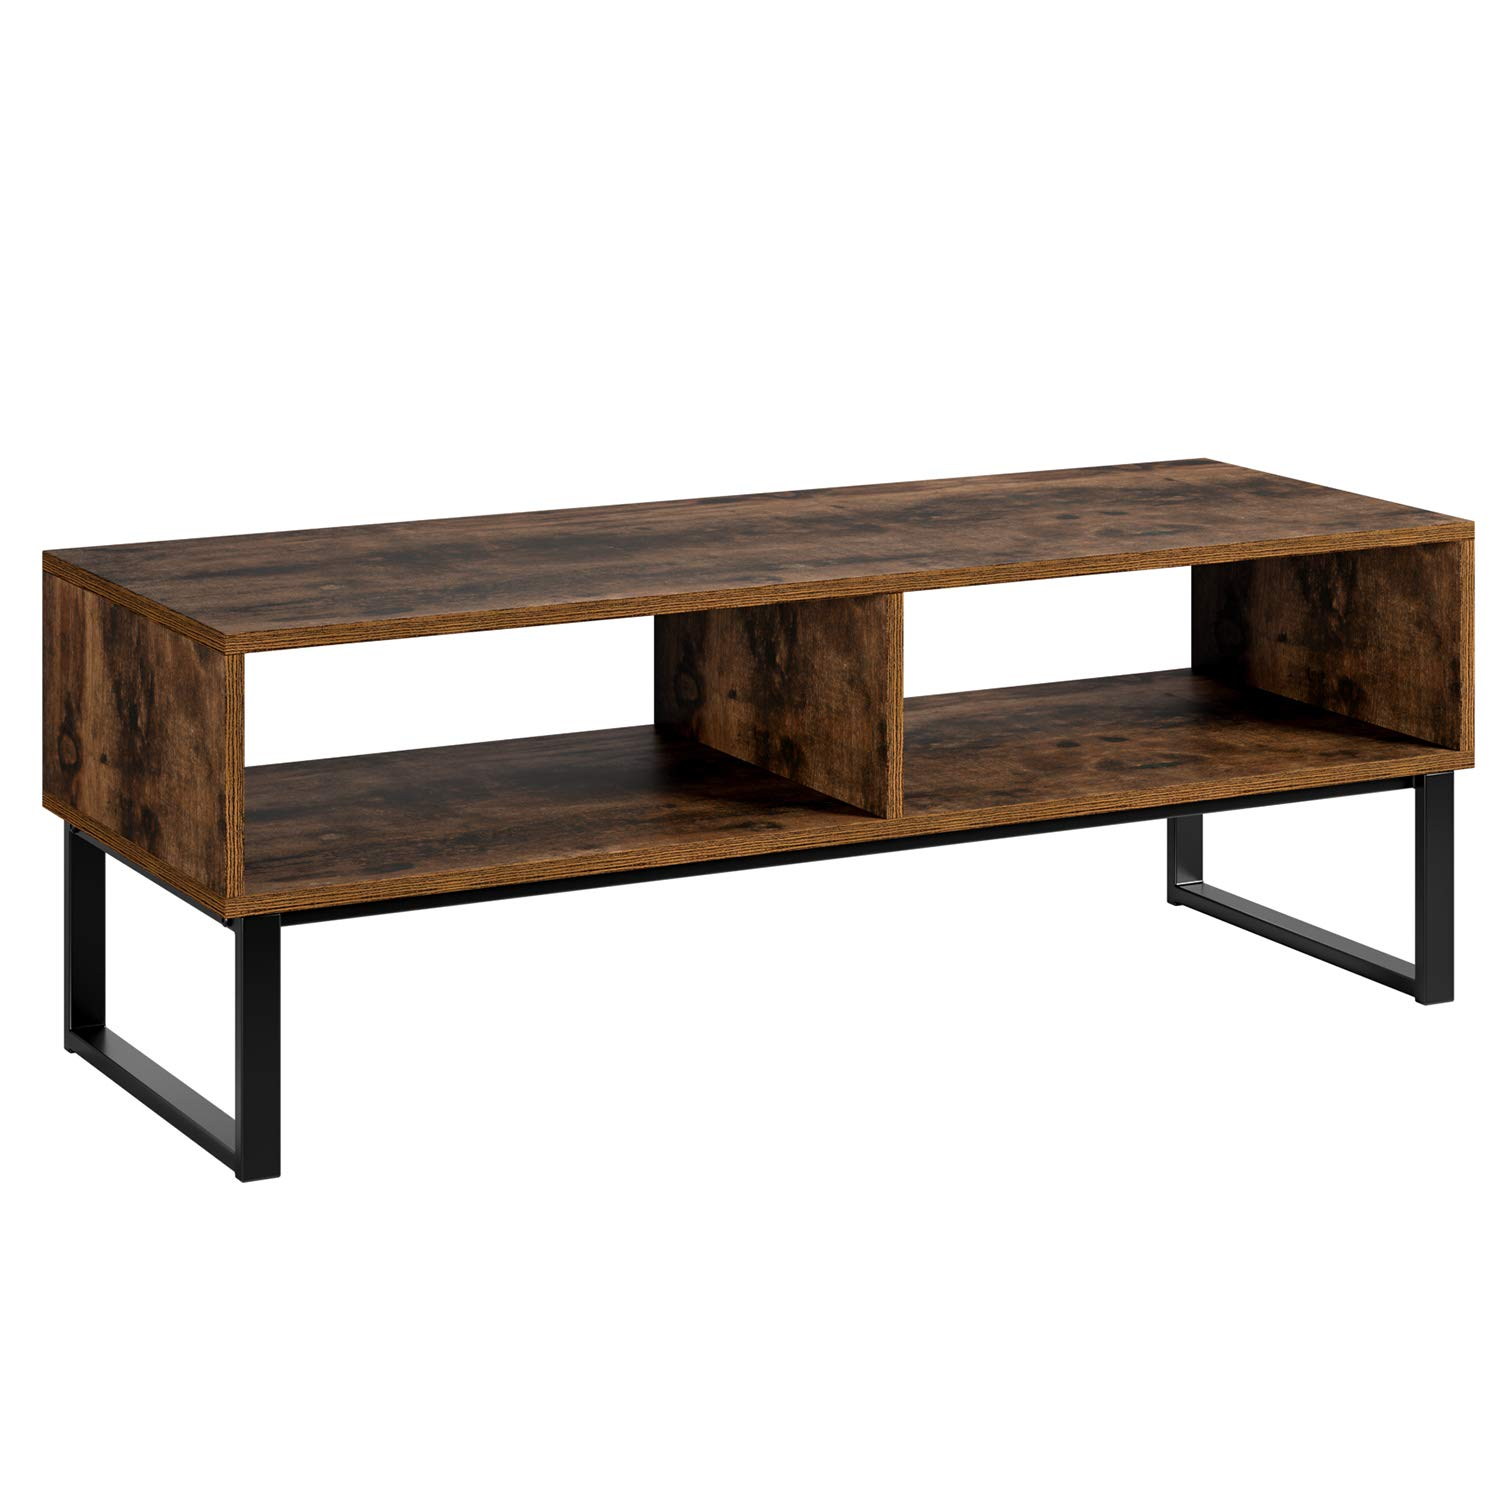 Homfa TV Stand Industrial TV Cabinet TV Console Coffee Table with Metal Stand for Bedroom Living Room